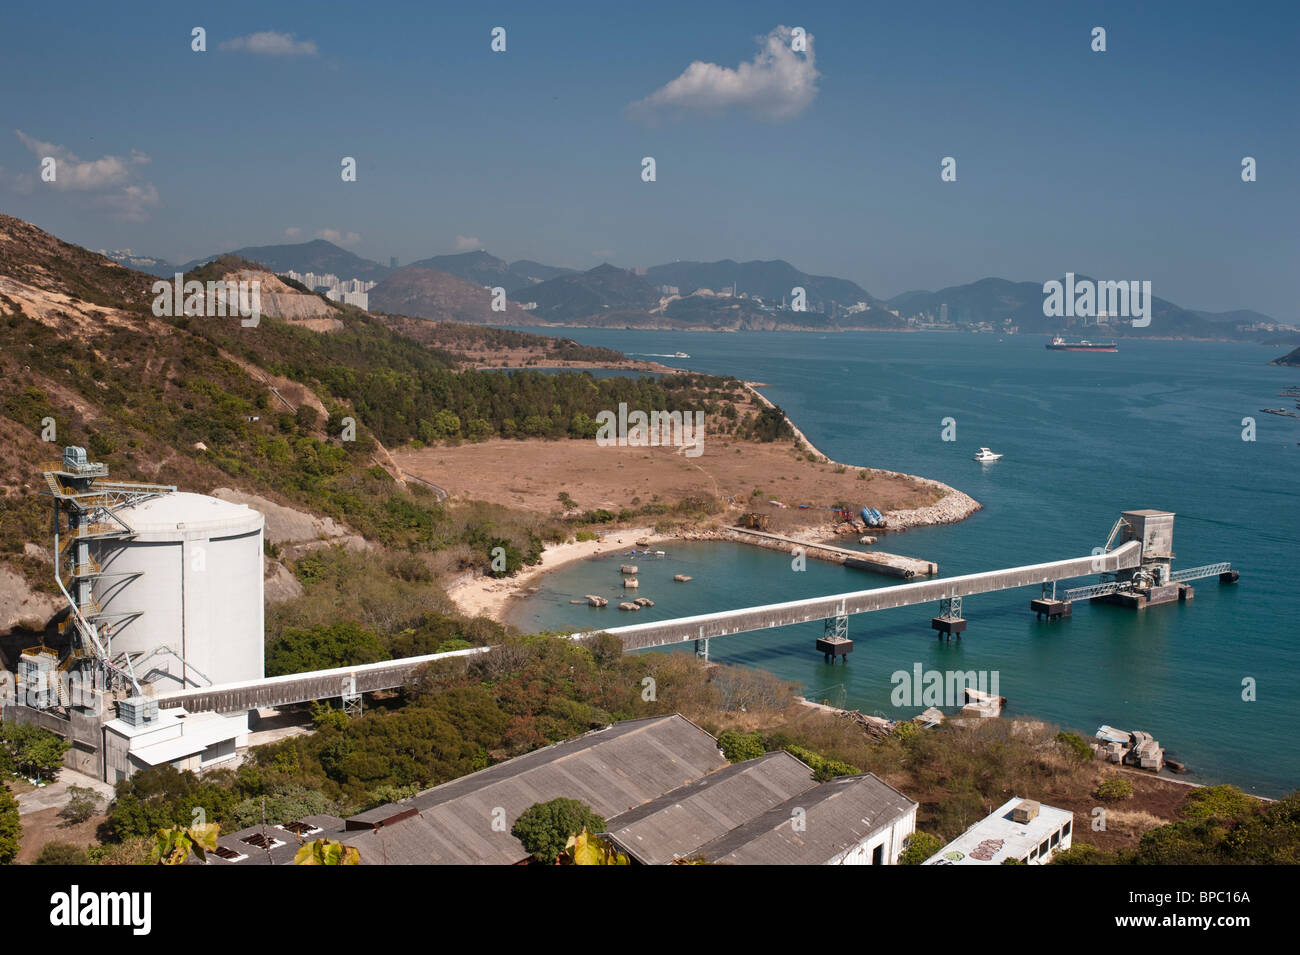 Picnic Bay on Lamma Island with Sok Kwu Wan village. The deserted cement quarry. - Stock Image